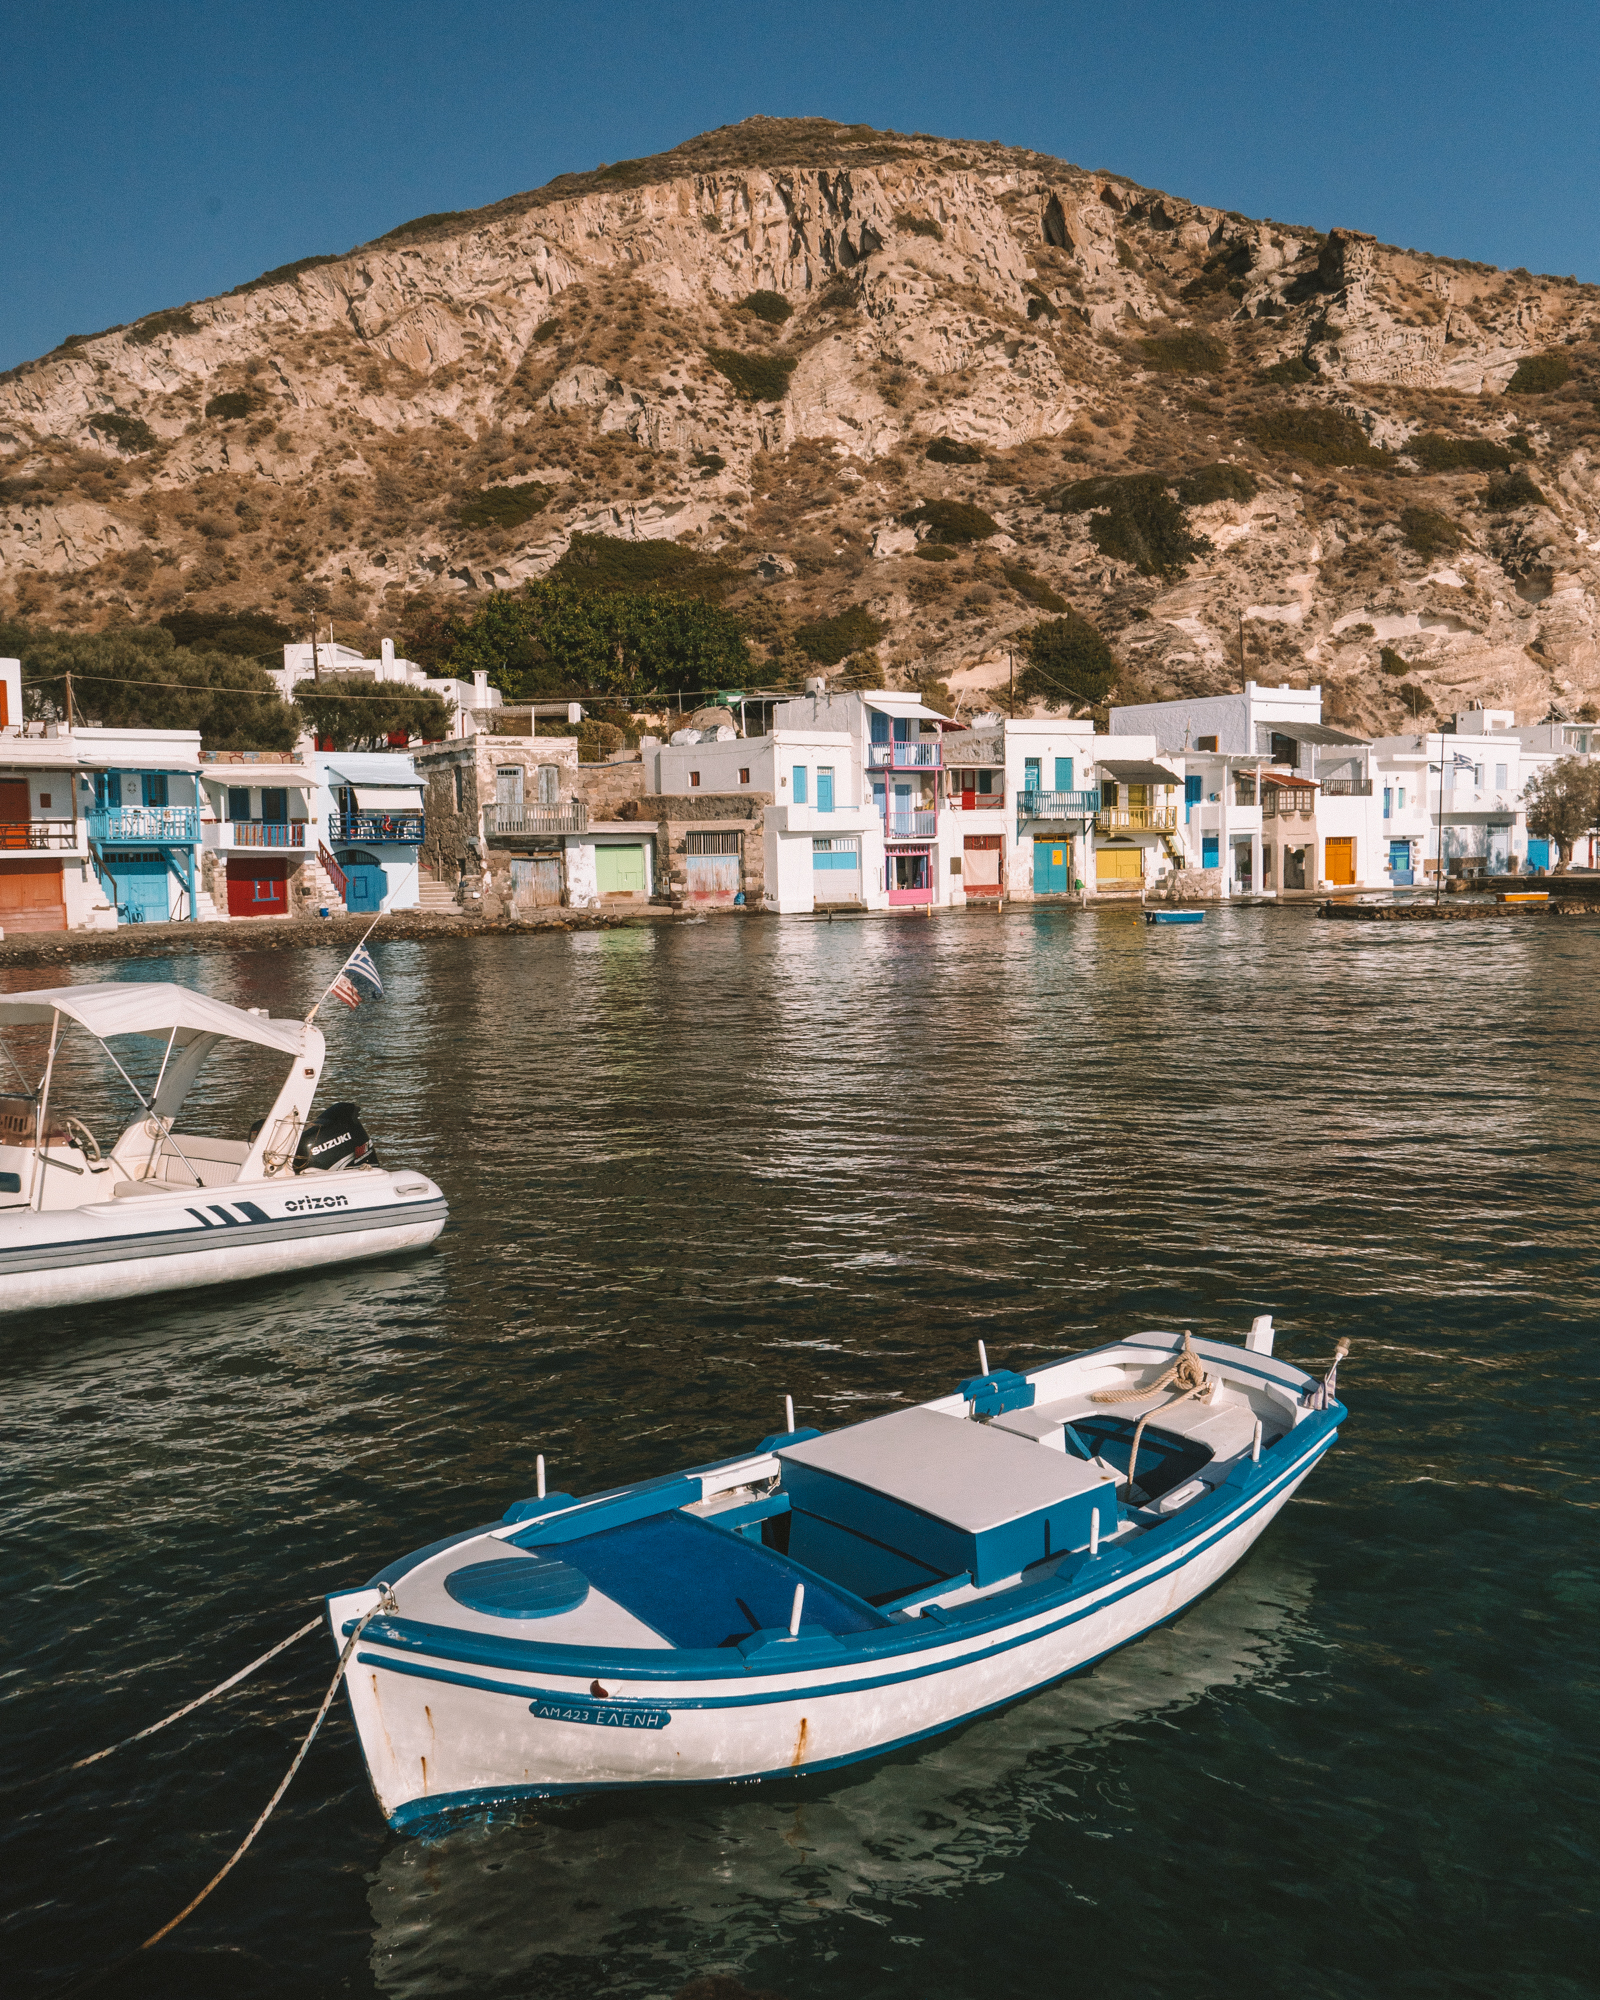 Blue and white fishing boat floating on the sea in Klima Fishing Village in Milos Greece